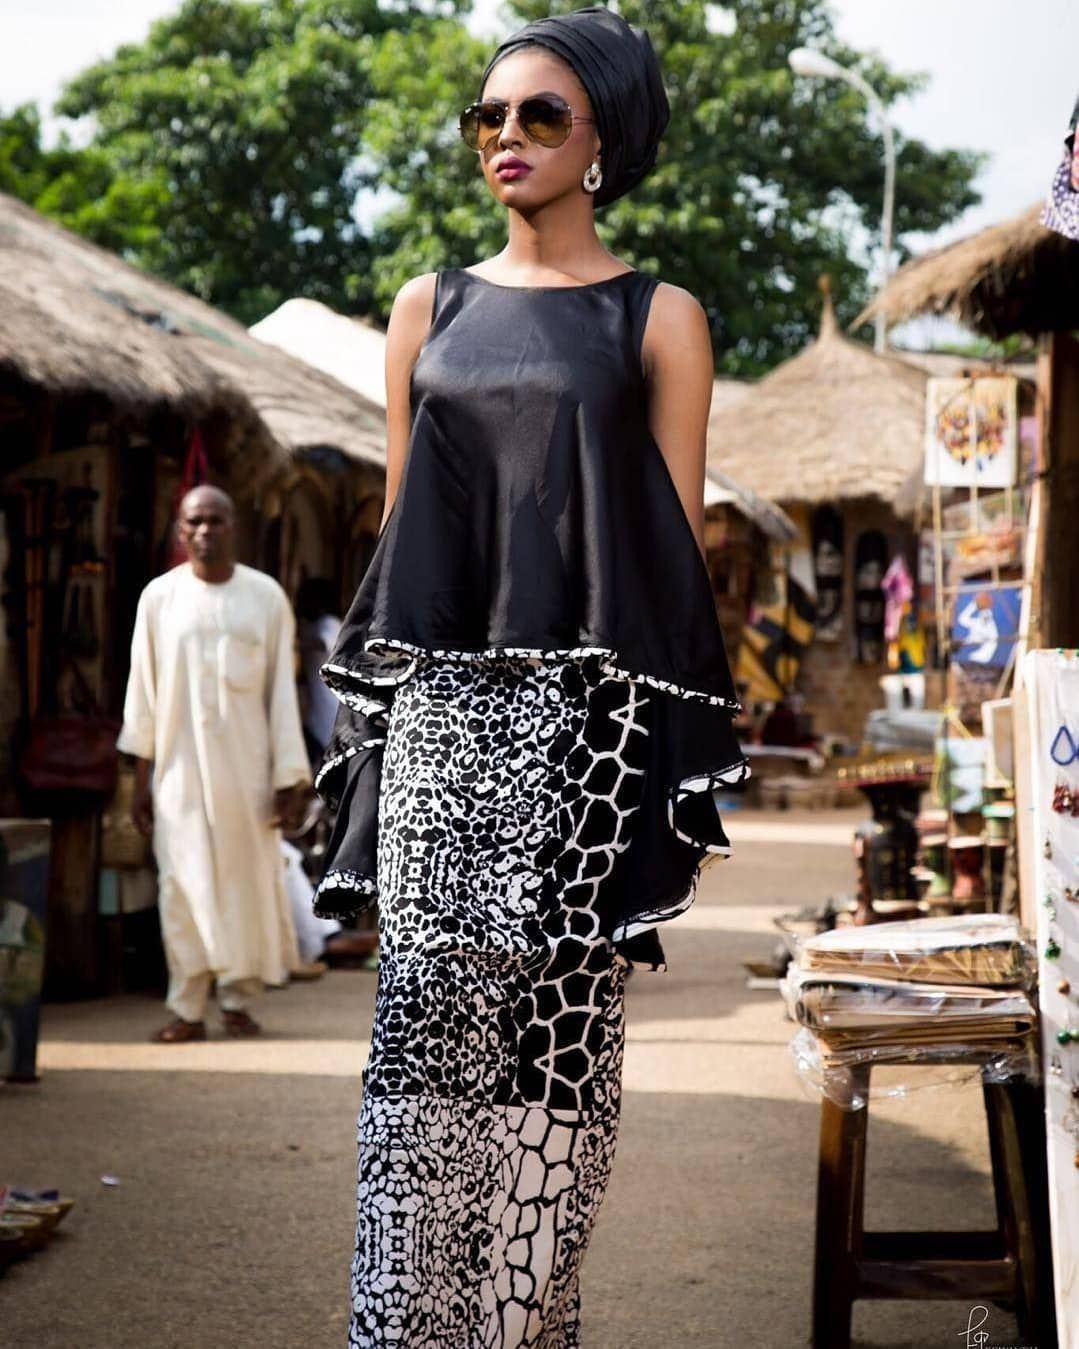 African white lace dress styles  Carmen  on Instagram uccouturefashion moda chic coolud  Our